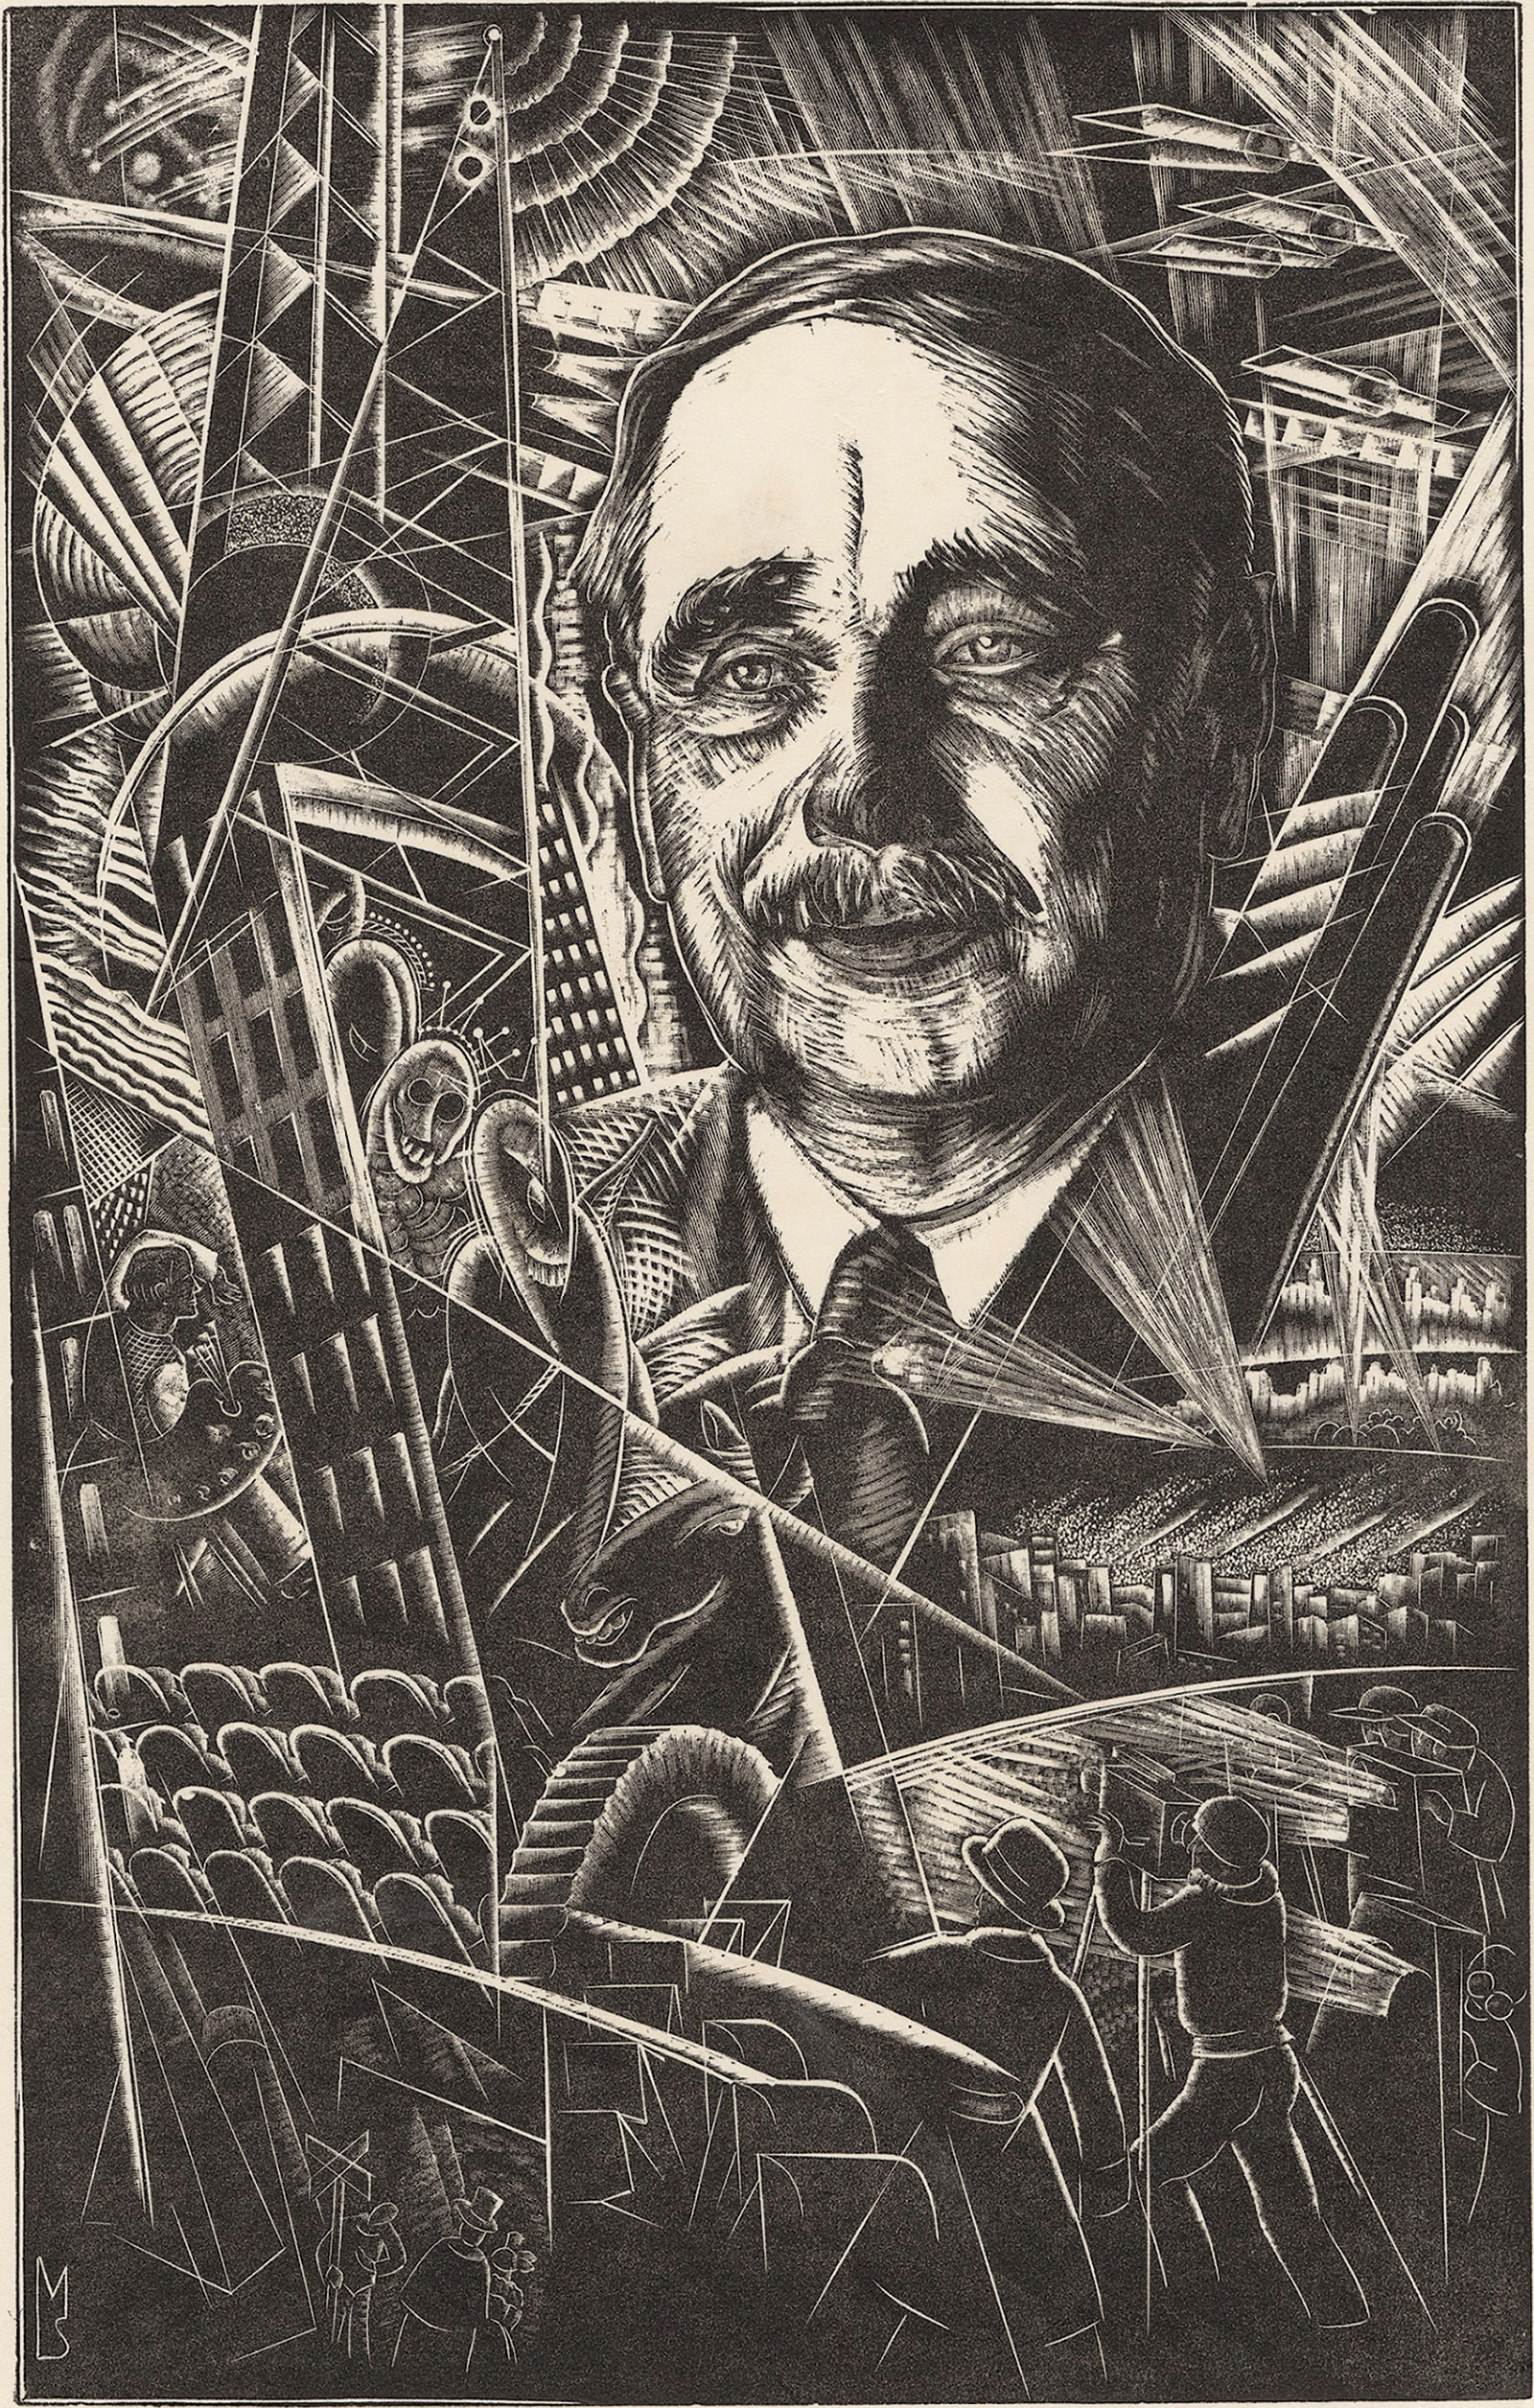 Engraving of H.G. Wells